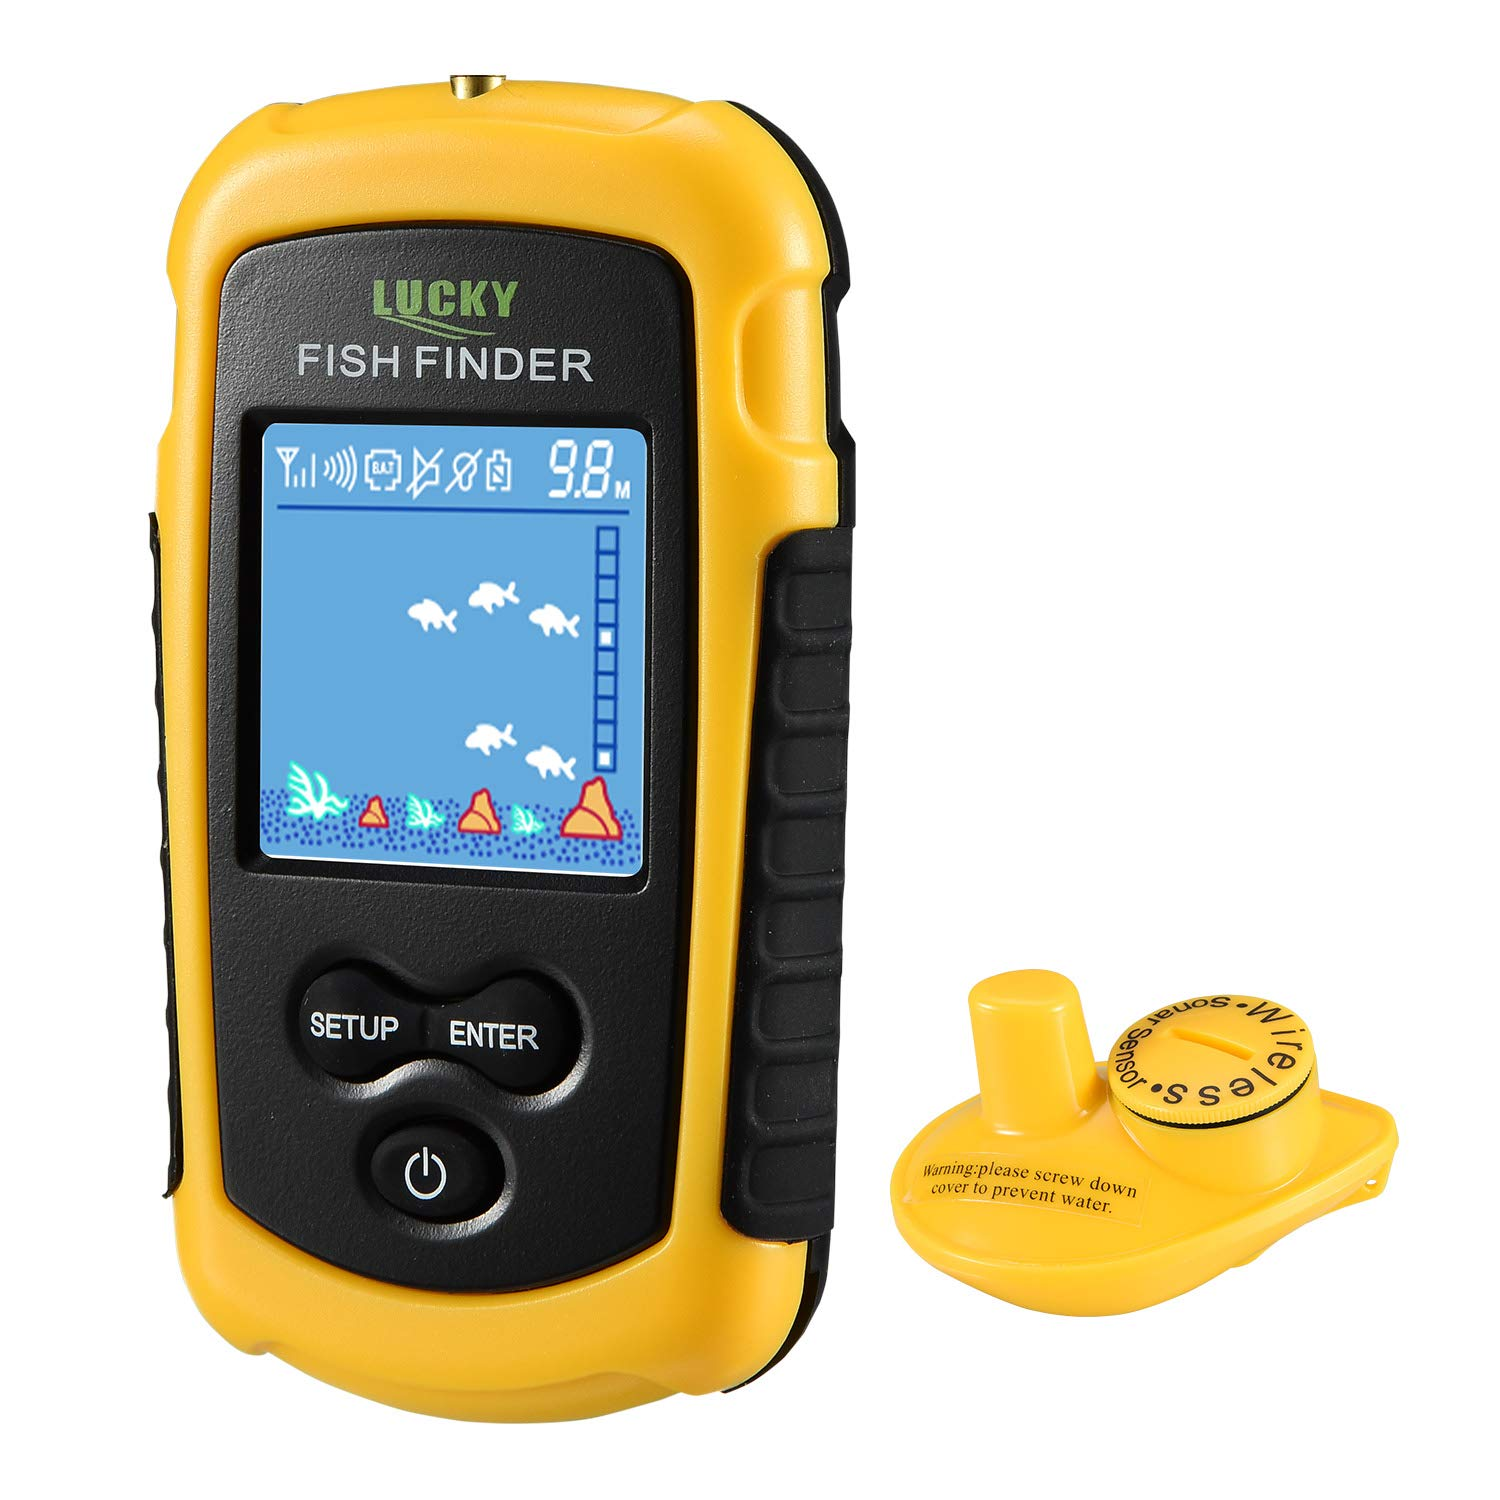 LUCKY Portable Wireless Fish Finders for Shore Fishing for Beginners